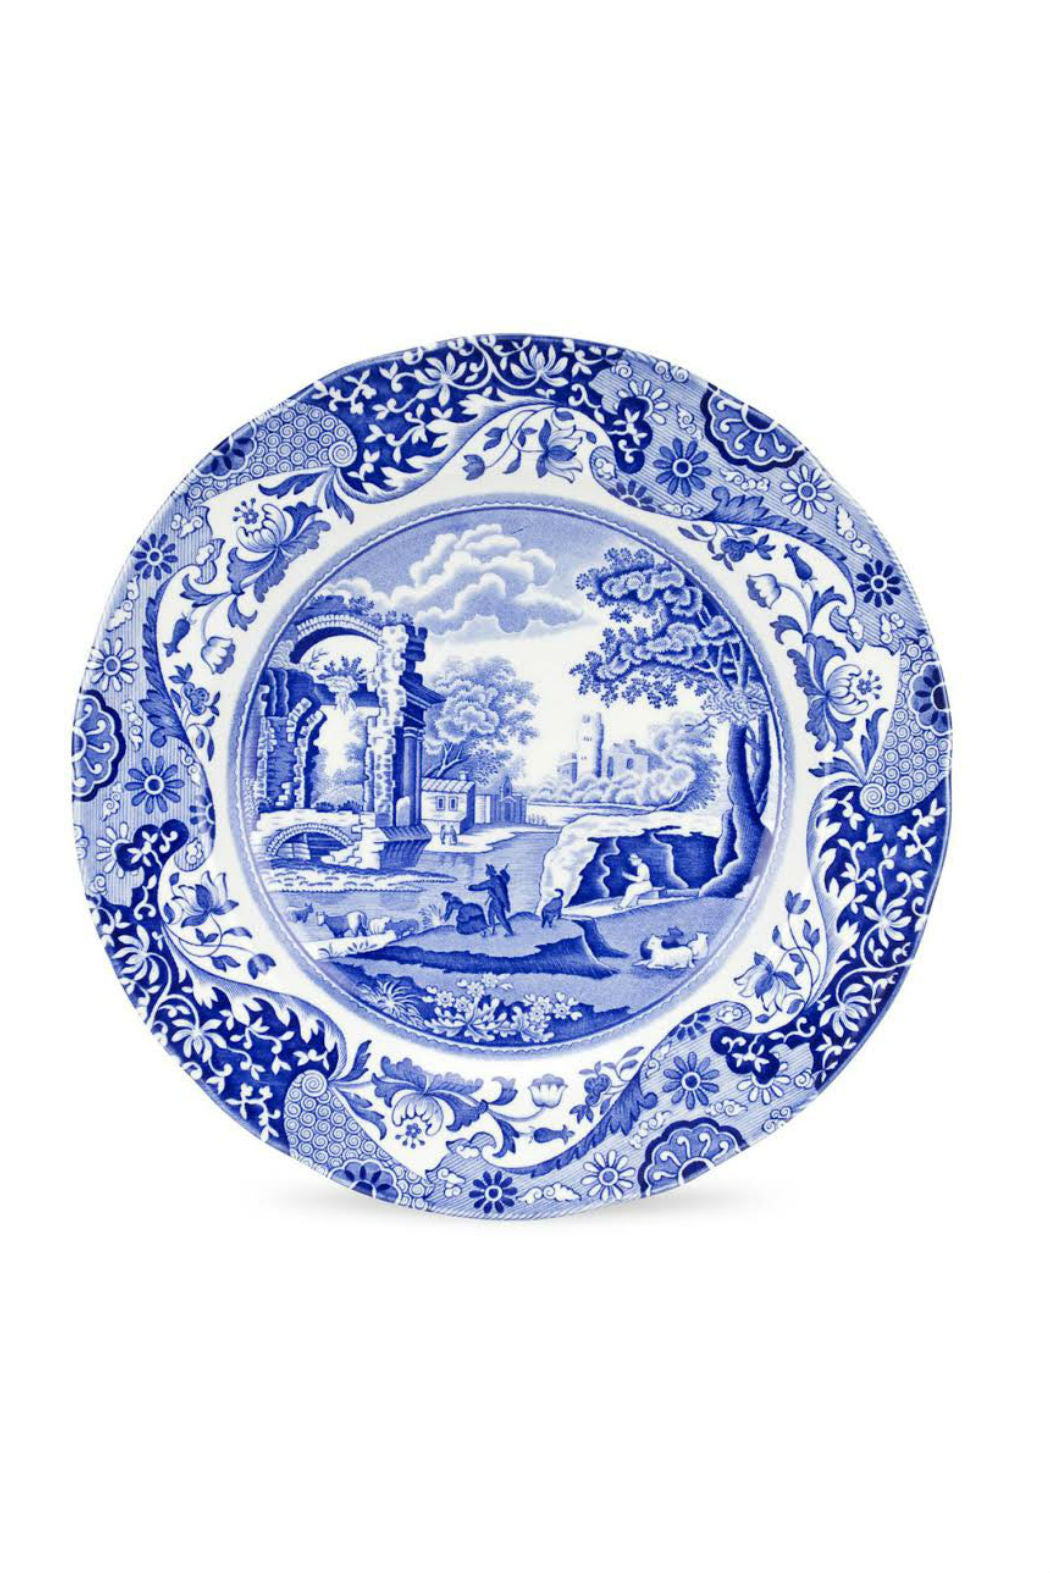 Spode Blue Italian Dinner Plate, Set of Four with Free Shipping